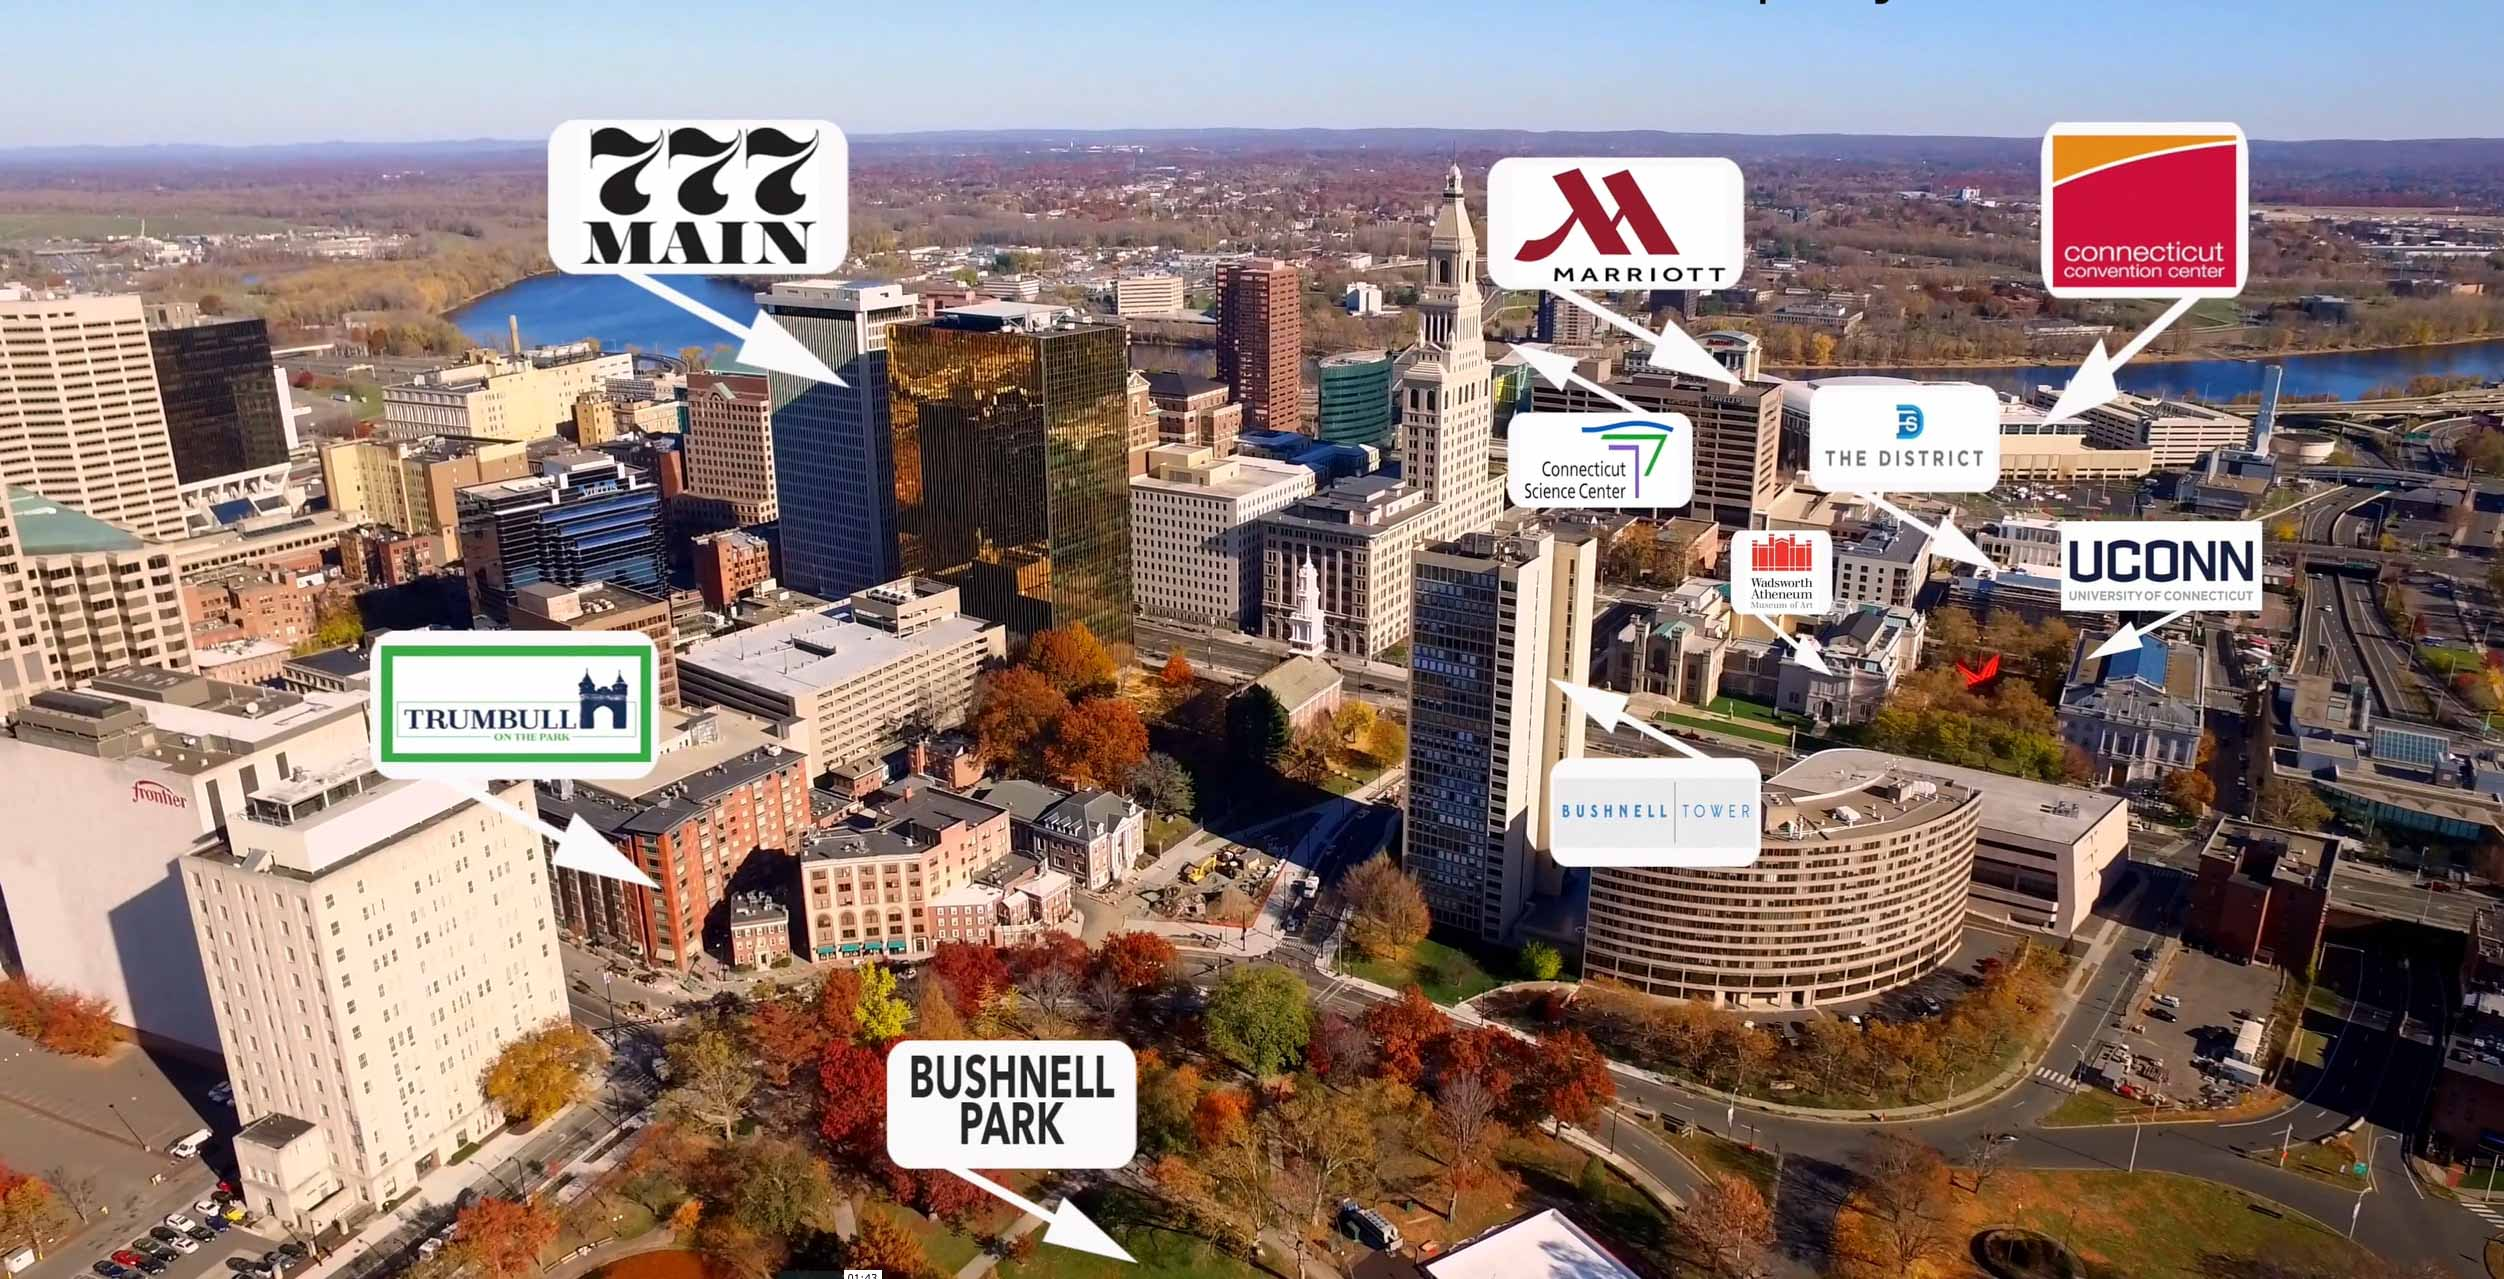 Drones in Premium Commercial Real Estate Marketing